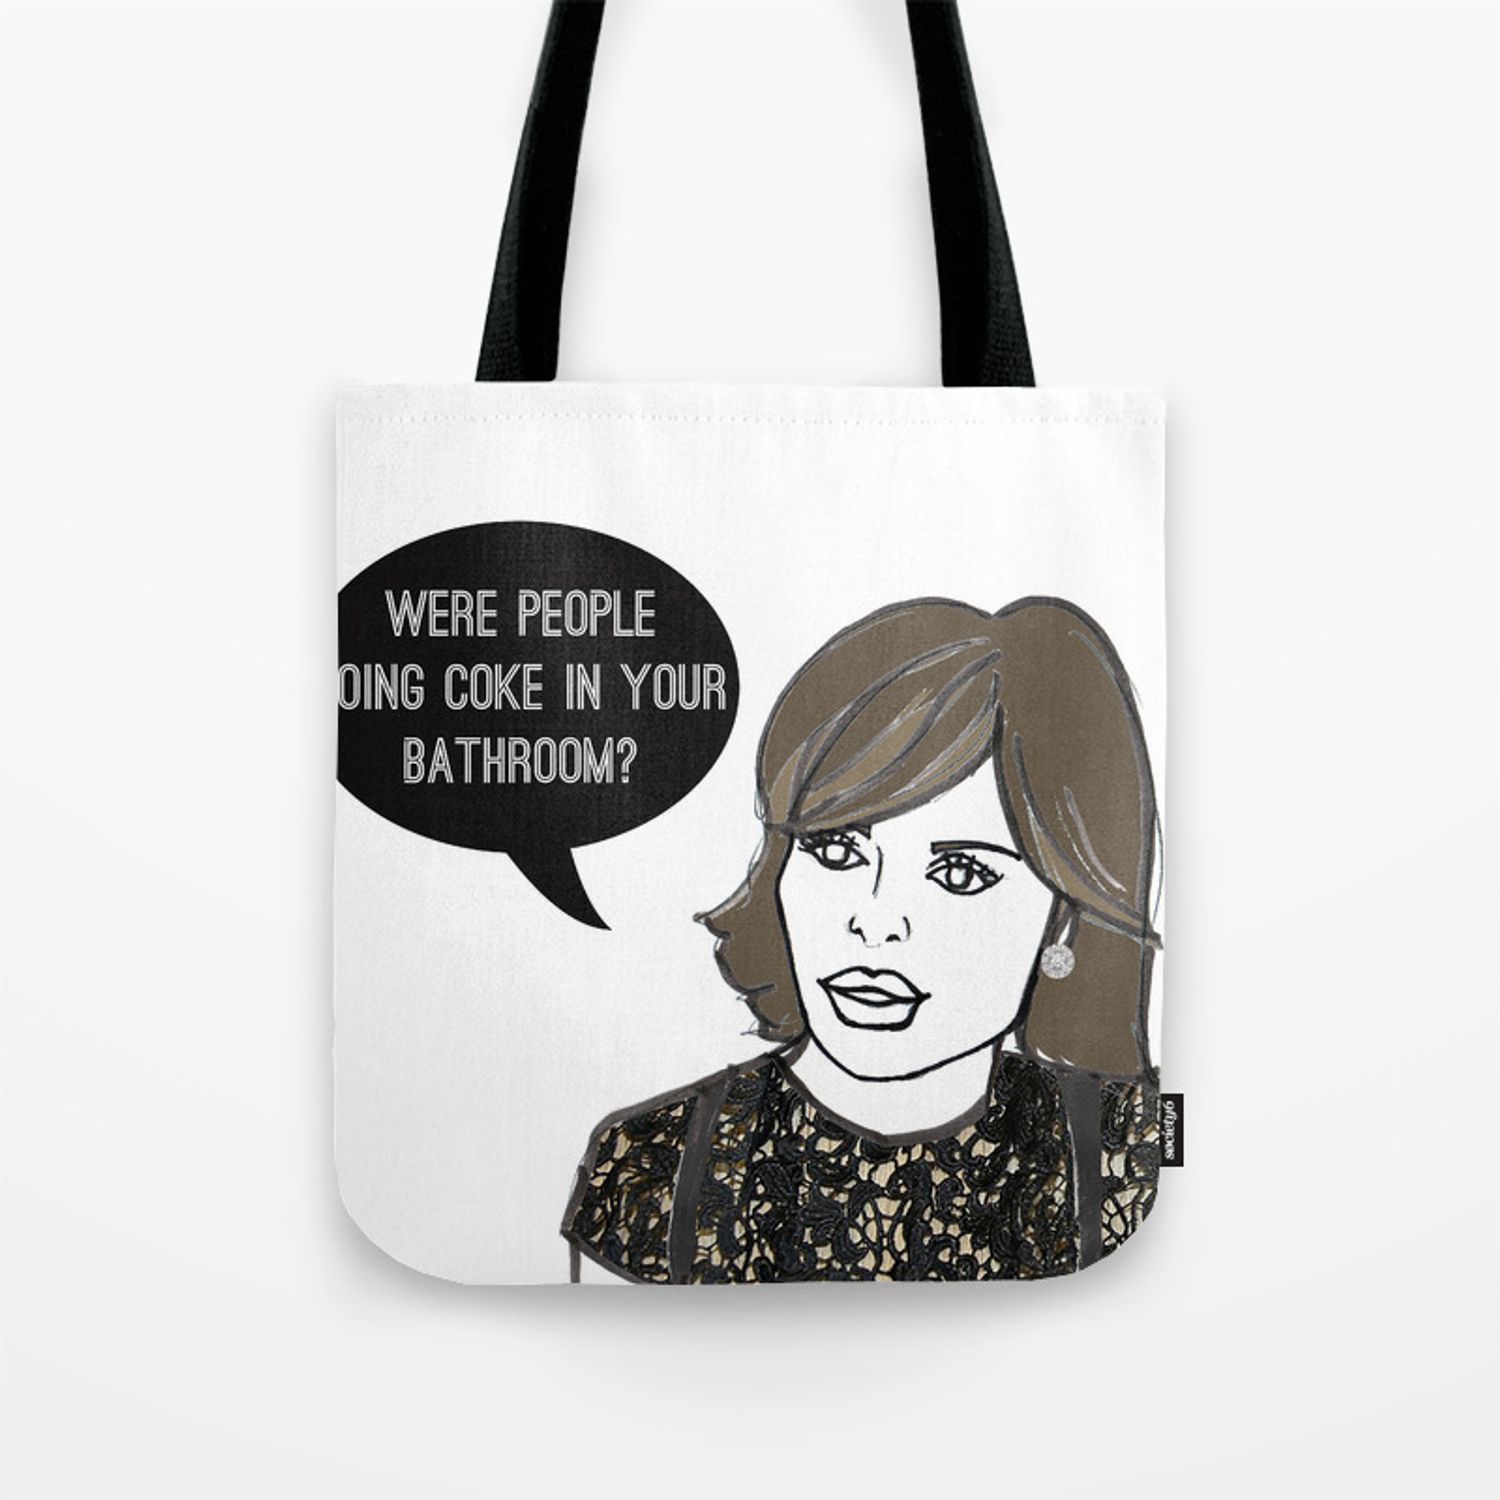 Your Bathroom Tote Bag By